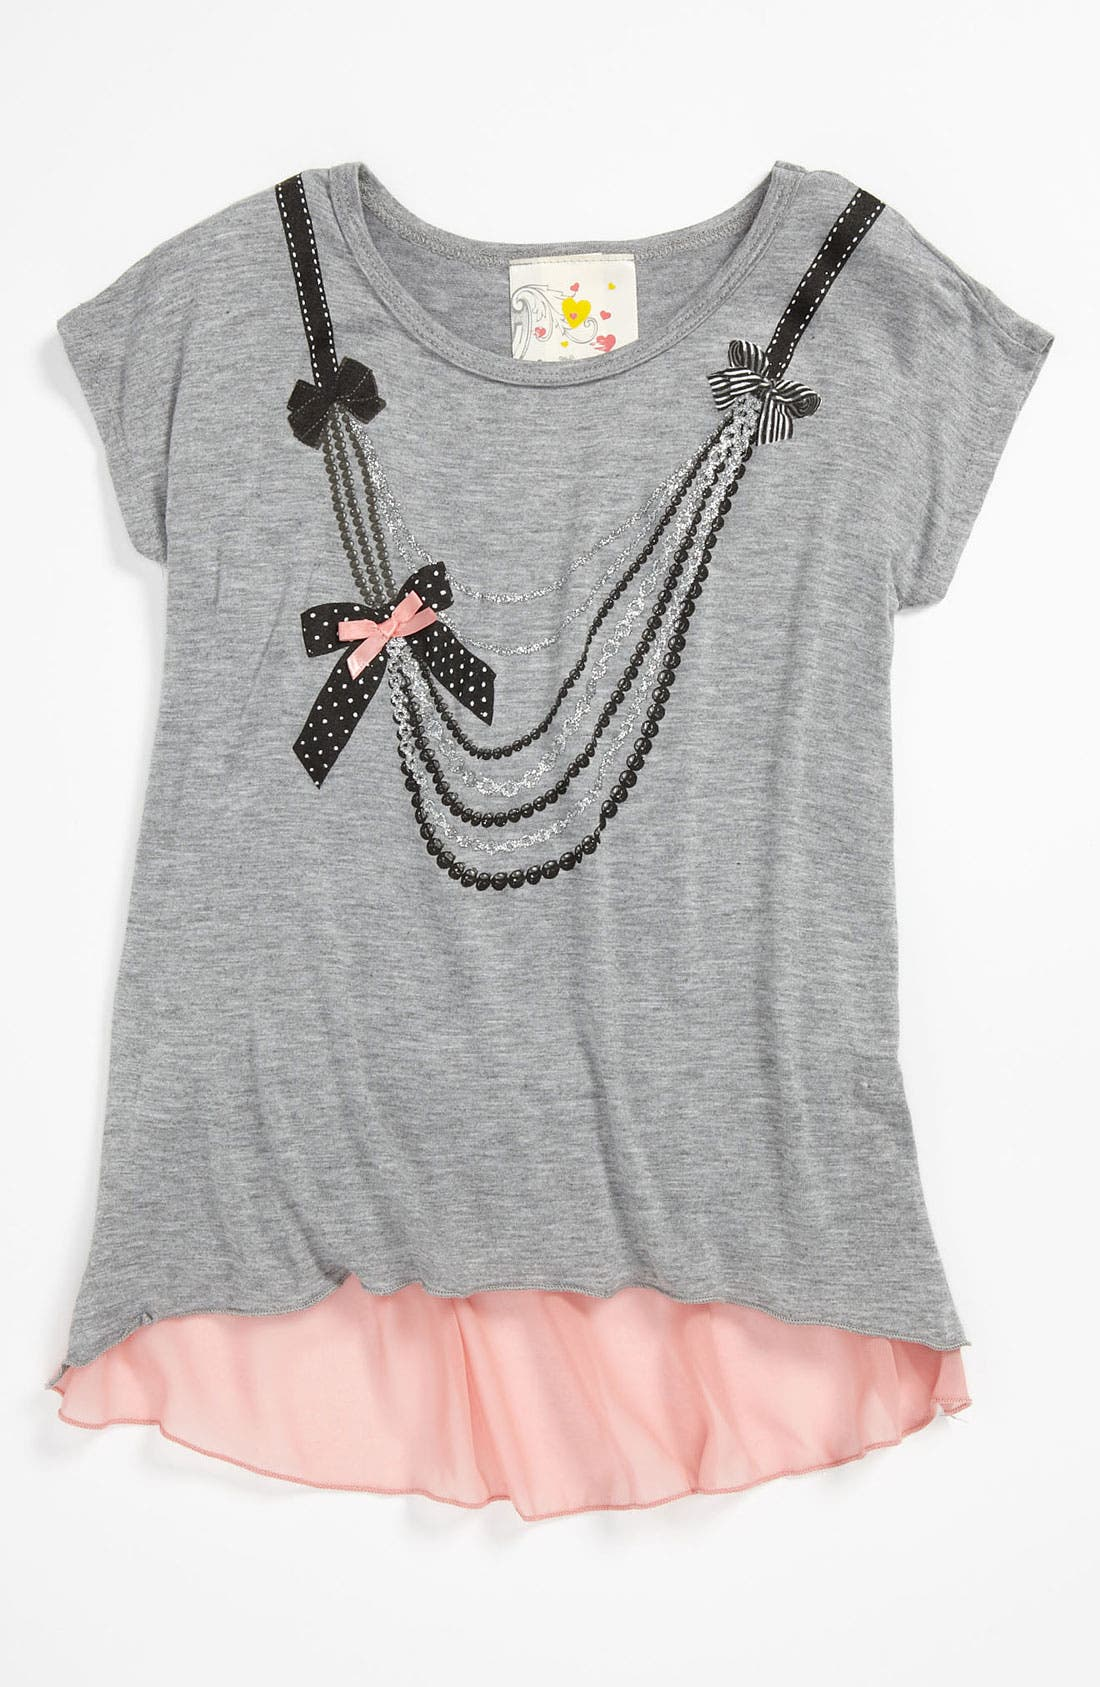 Main Image - Jenna & Jessie 'Necklace' Tee (Little Girls)